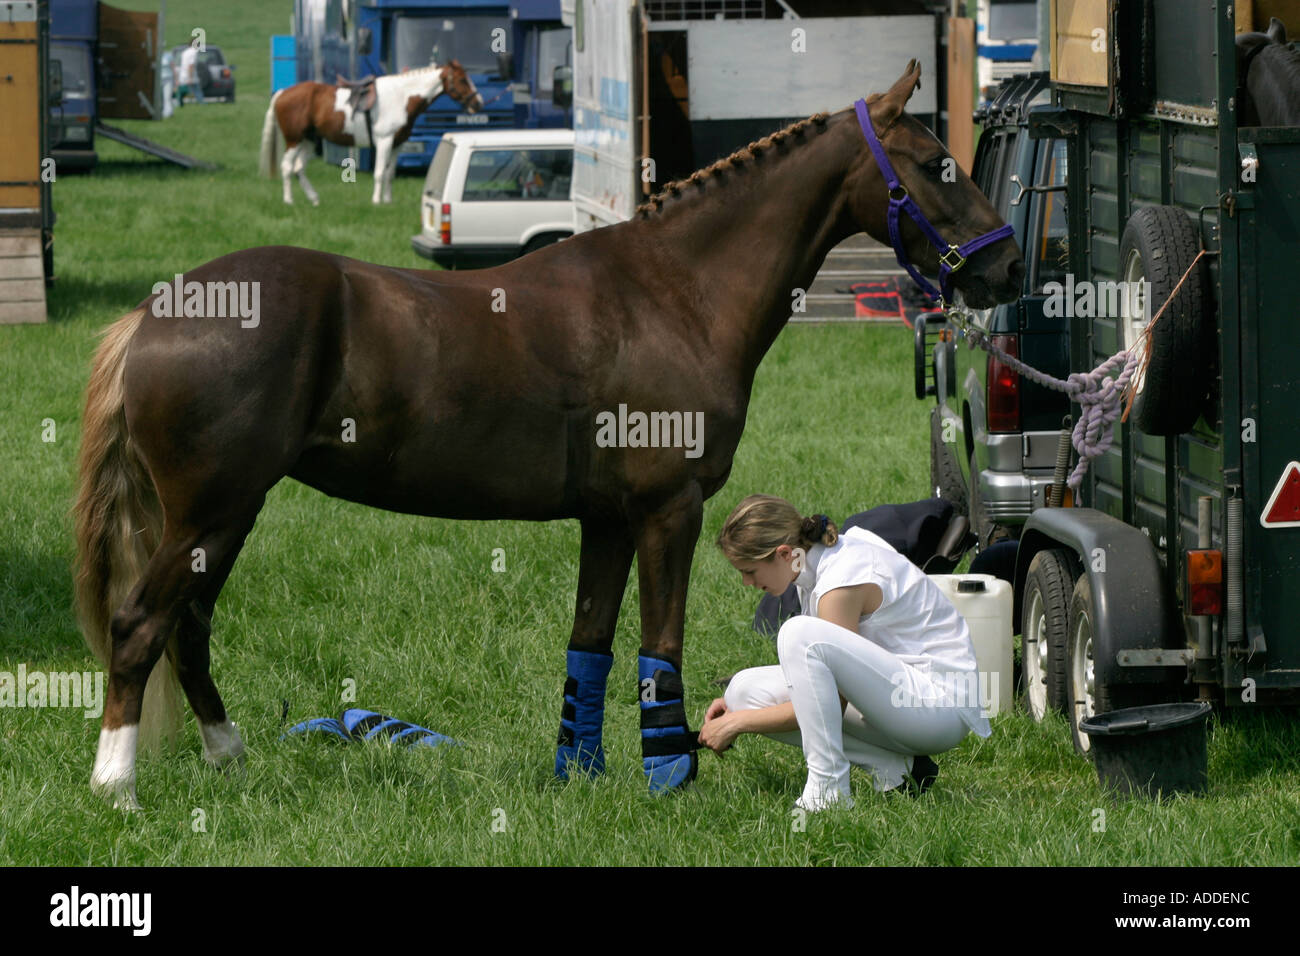 A young rider prepares her horse for travel after competing at the South Oxfordshire Riding Club's Open Show - Stock Image